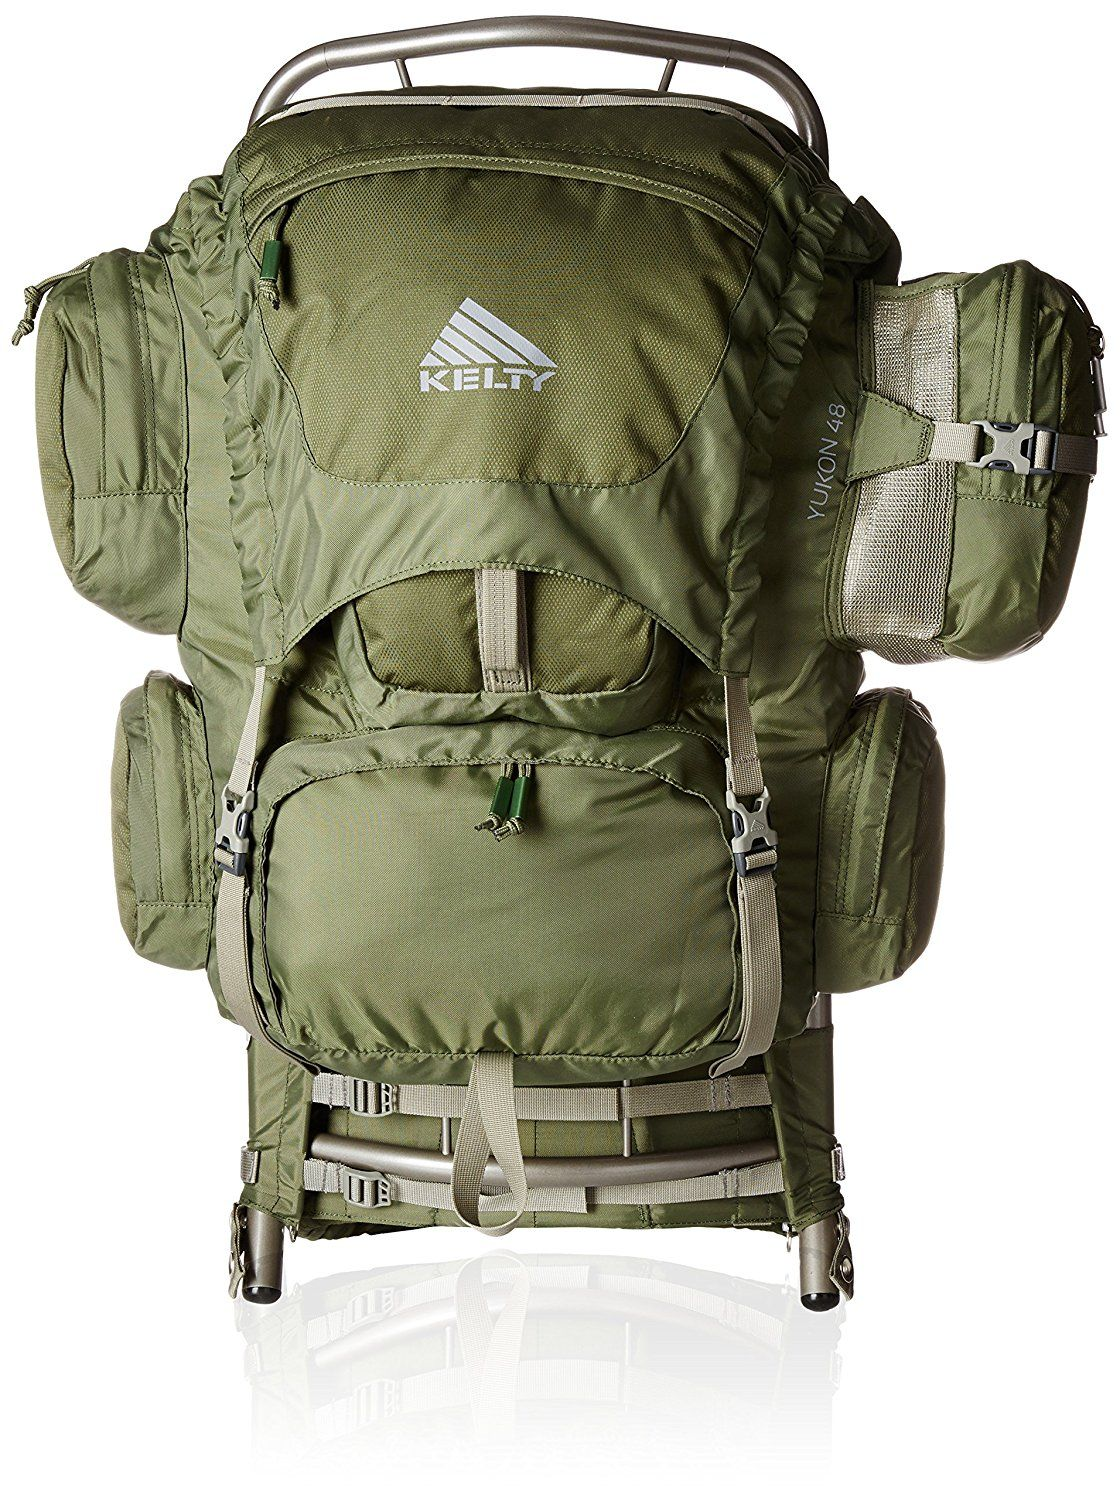 Kelty Yukon External Frame Pack * Startling review available here ...